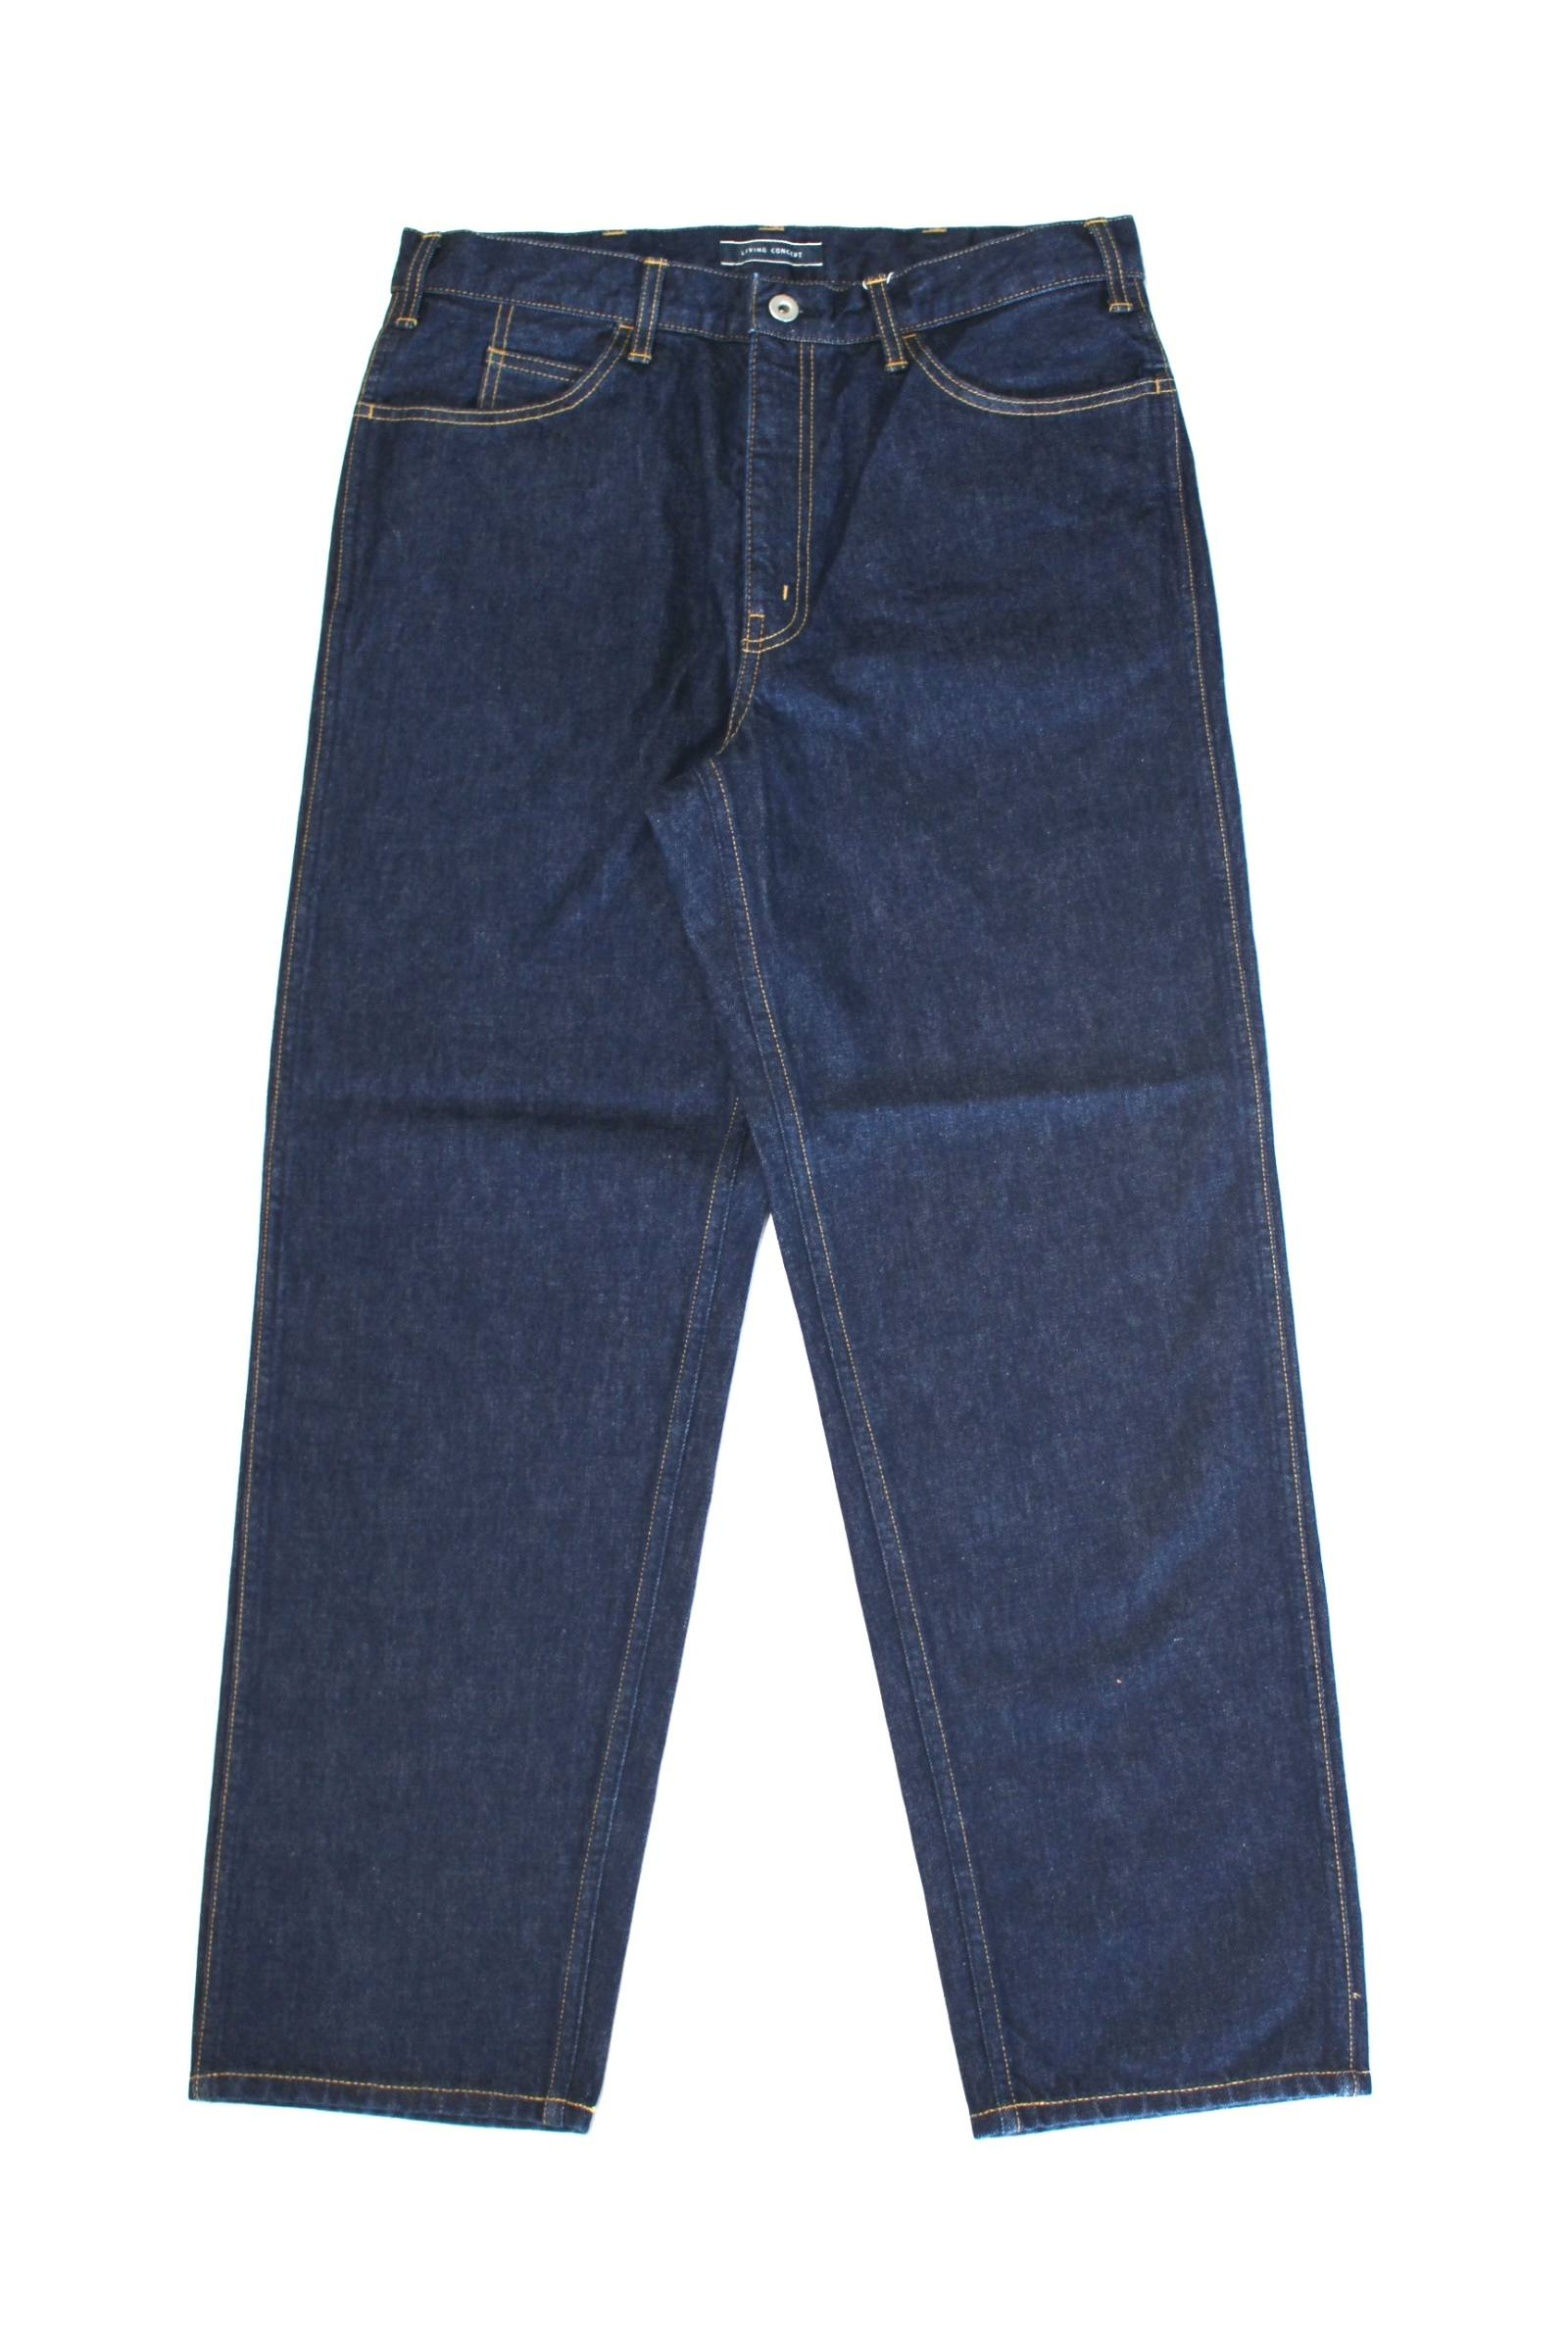 5POCKET WIDE DENIM PANTS(ONE WASH)/ワイドデニムパンツ